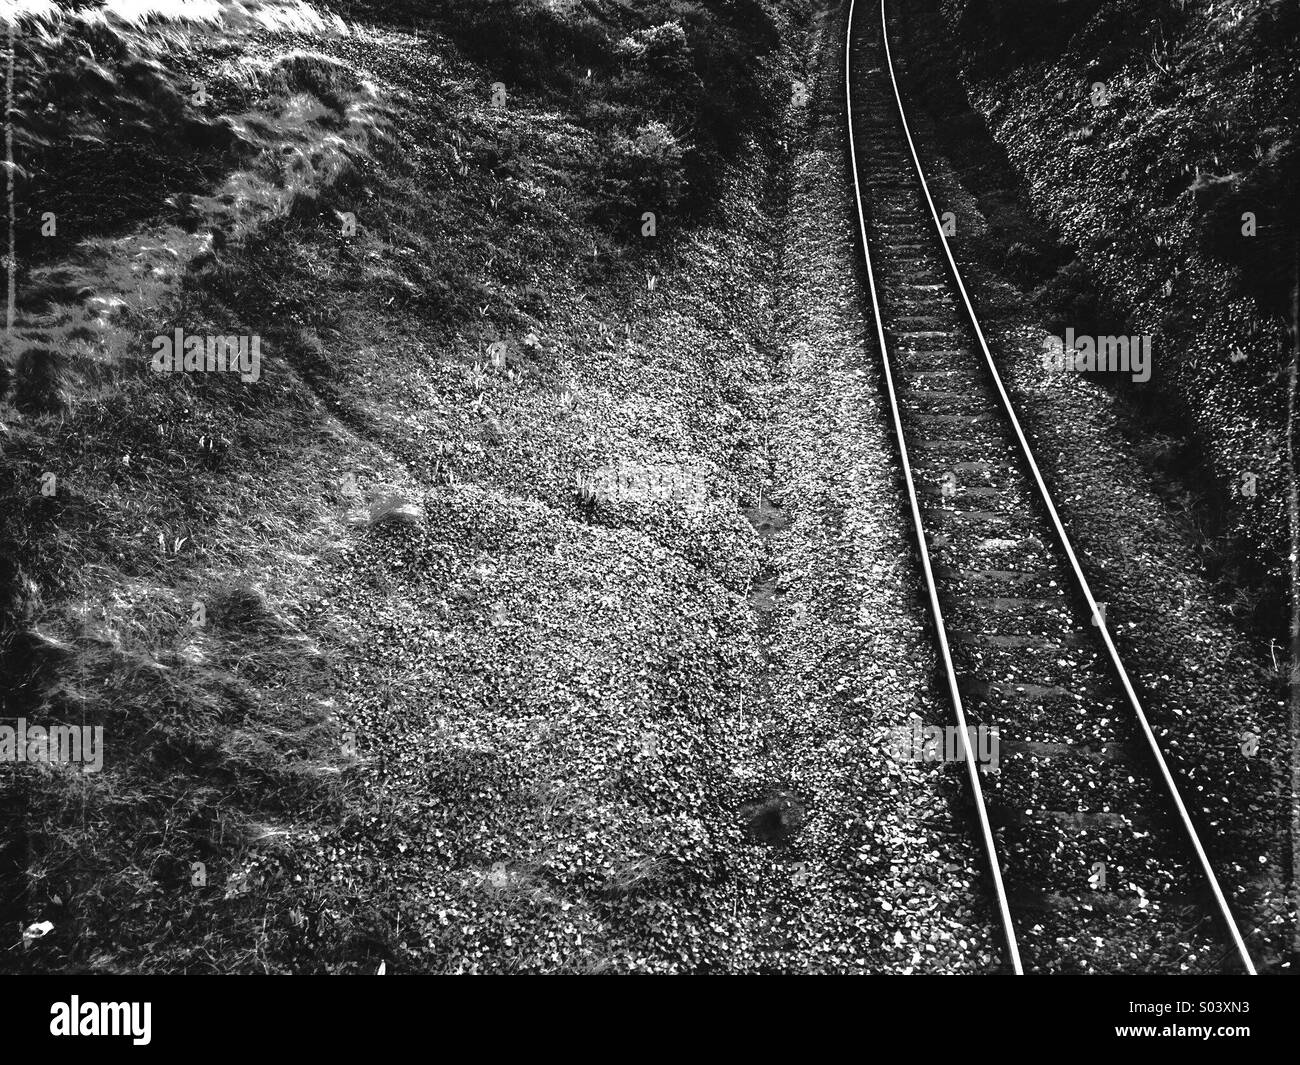 Rail tracks in black and white - Stock Image